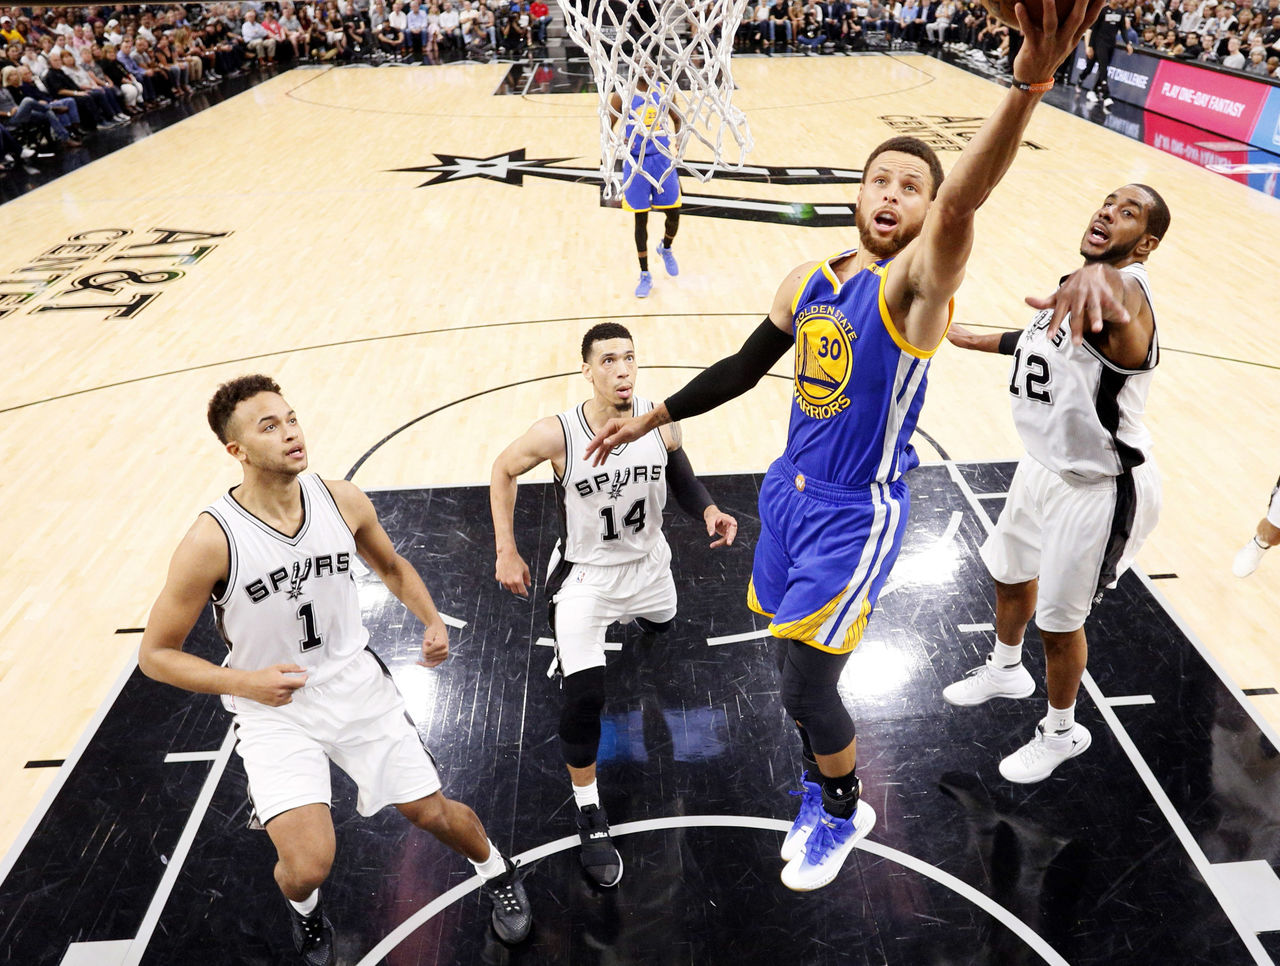 Cropped_2017-05-23t022835z_1997766426_nocid_rtrmadp_3_nba-playoffs-golden-state-warriors-at-san-antonio-spurs